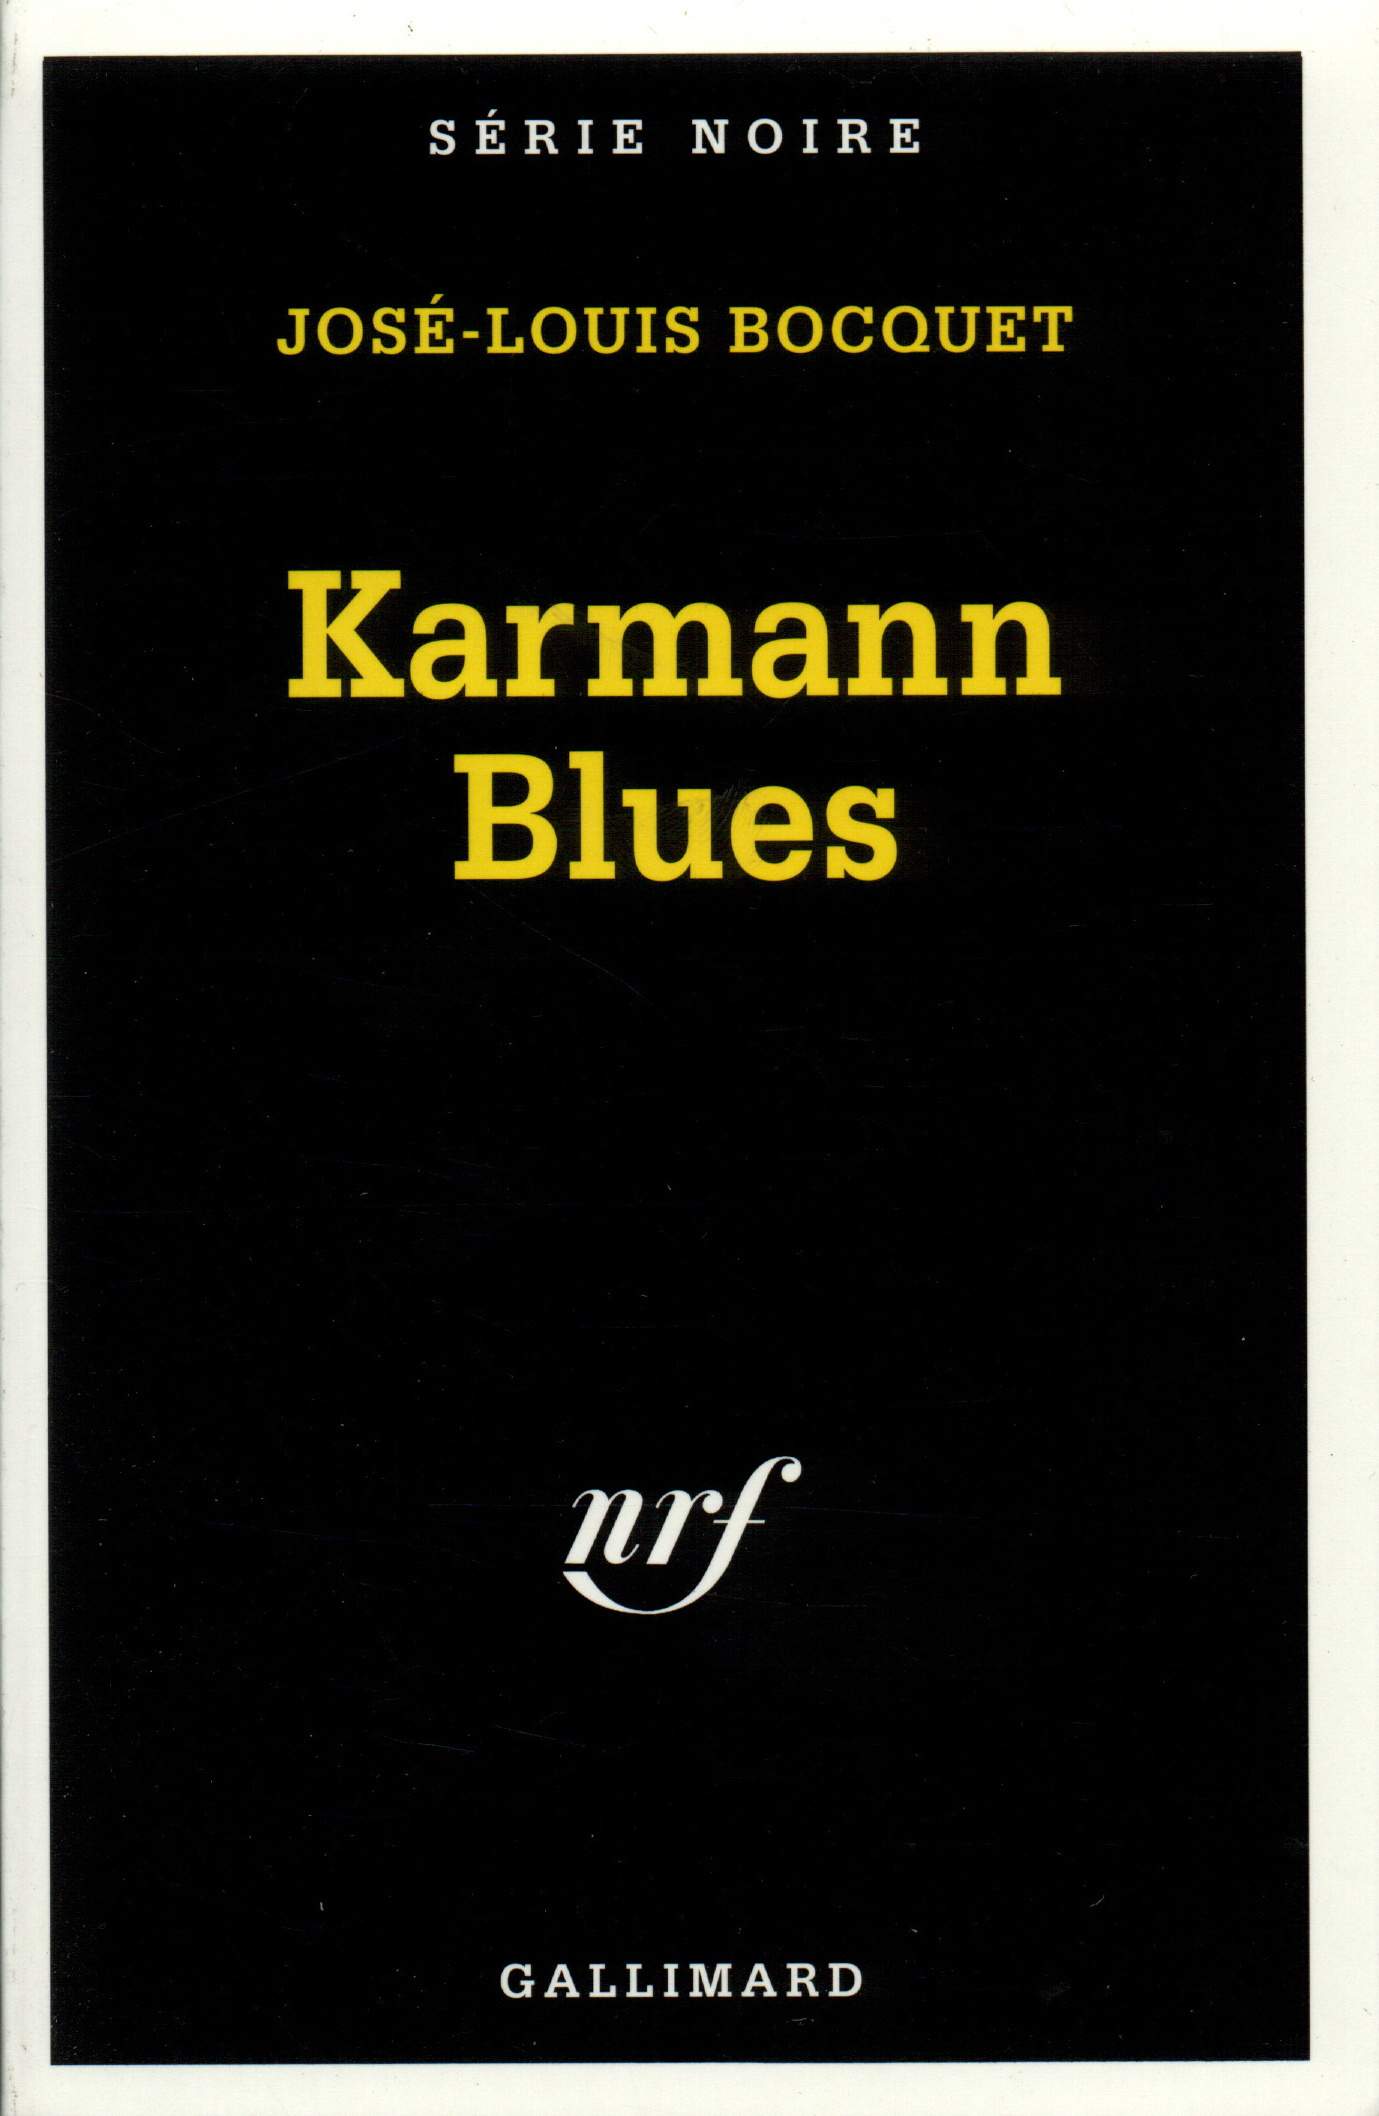 KARMANN BLUES